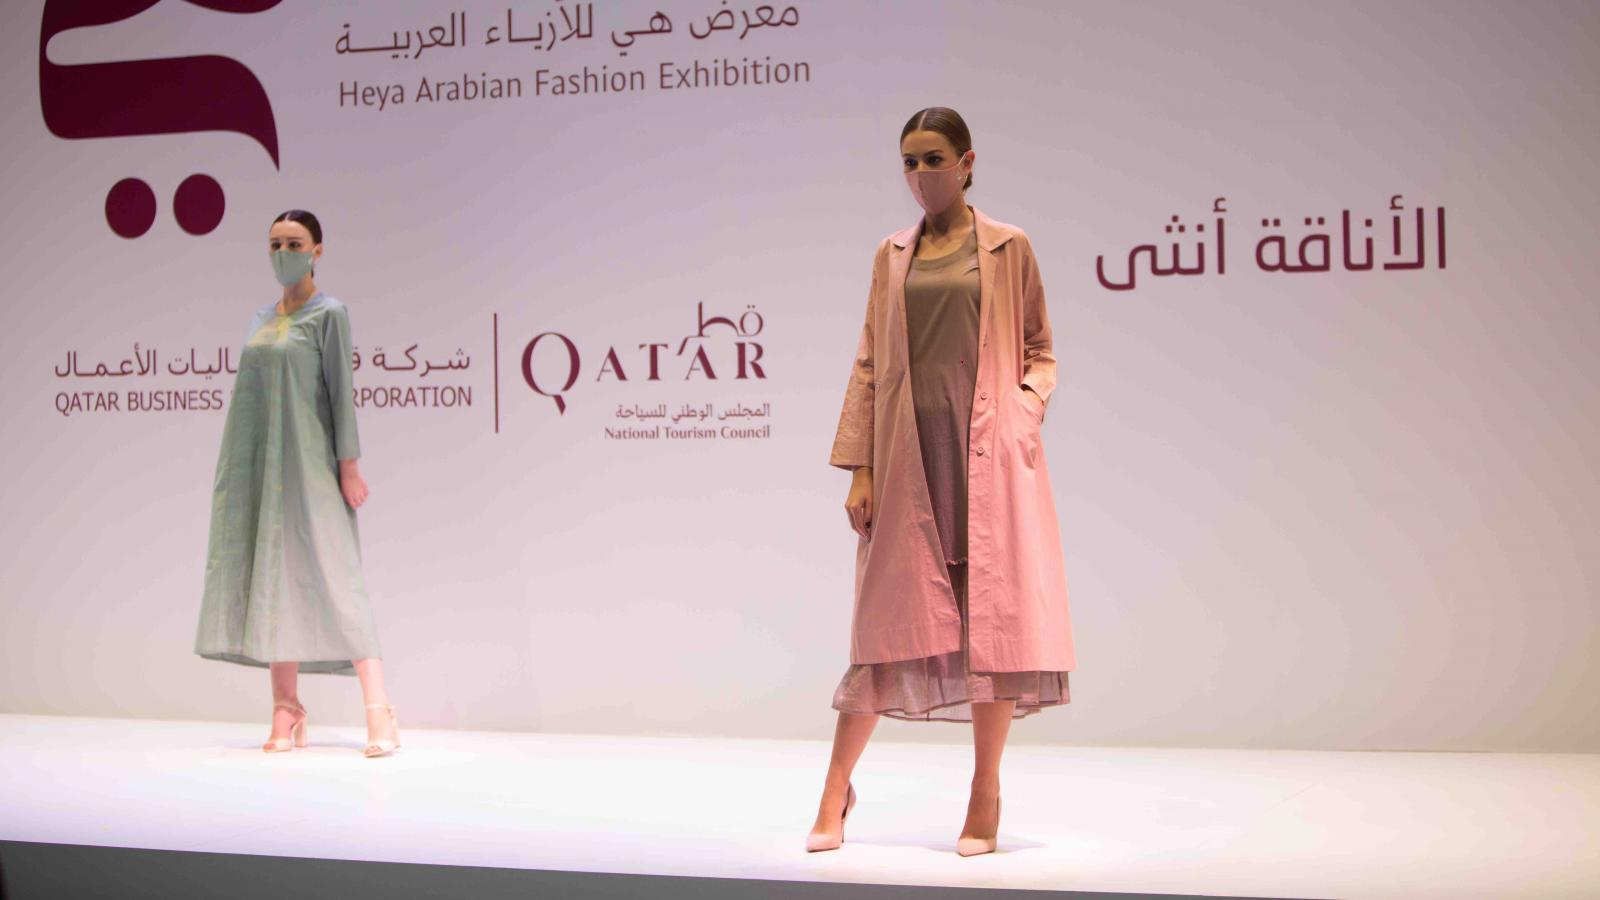 17th Heya Arabian Fashion Exhibition wrapped up its five-day event at DECC